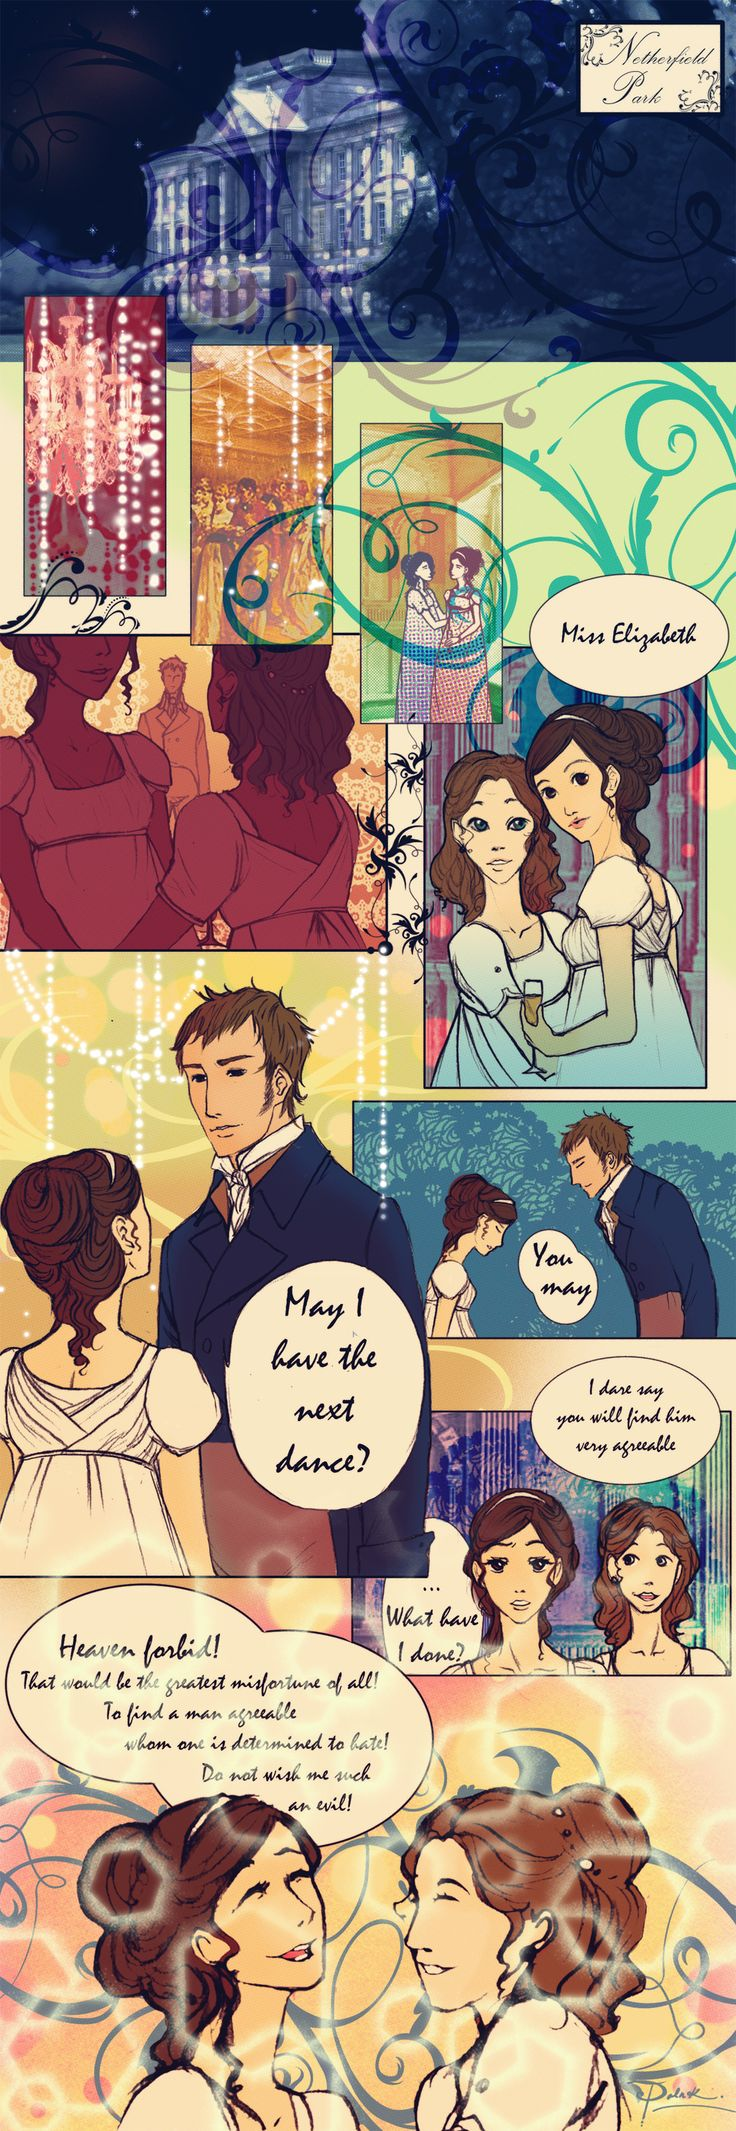 """essays on pride and prejudice by jane austen Jane austen essays essay on jane austen: essay examples, topics, questions, thesis statement  jane austen's """"pride and prejudice"""" is a beautiful love story ."""